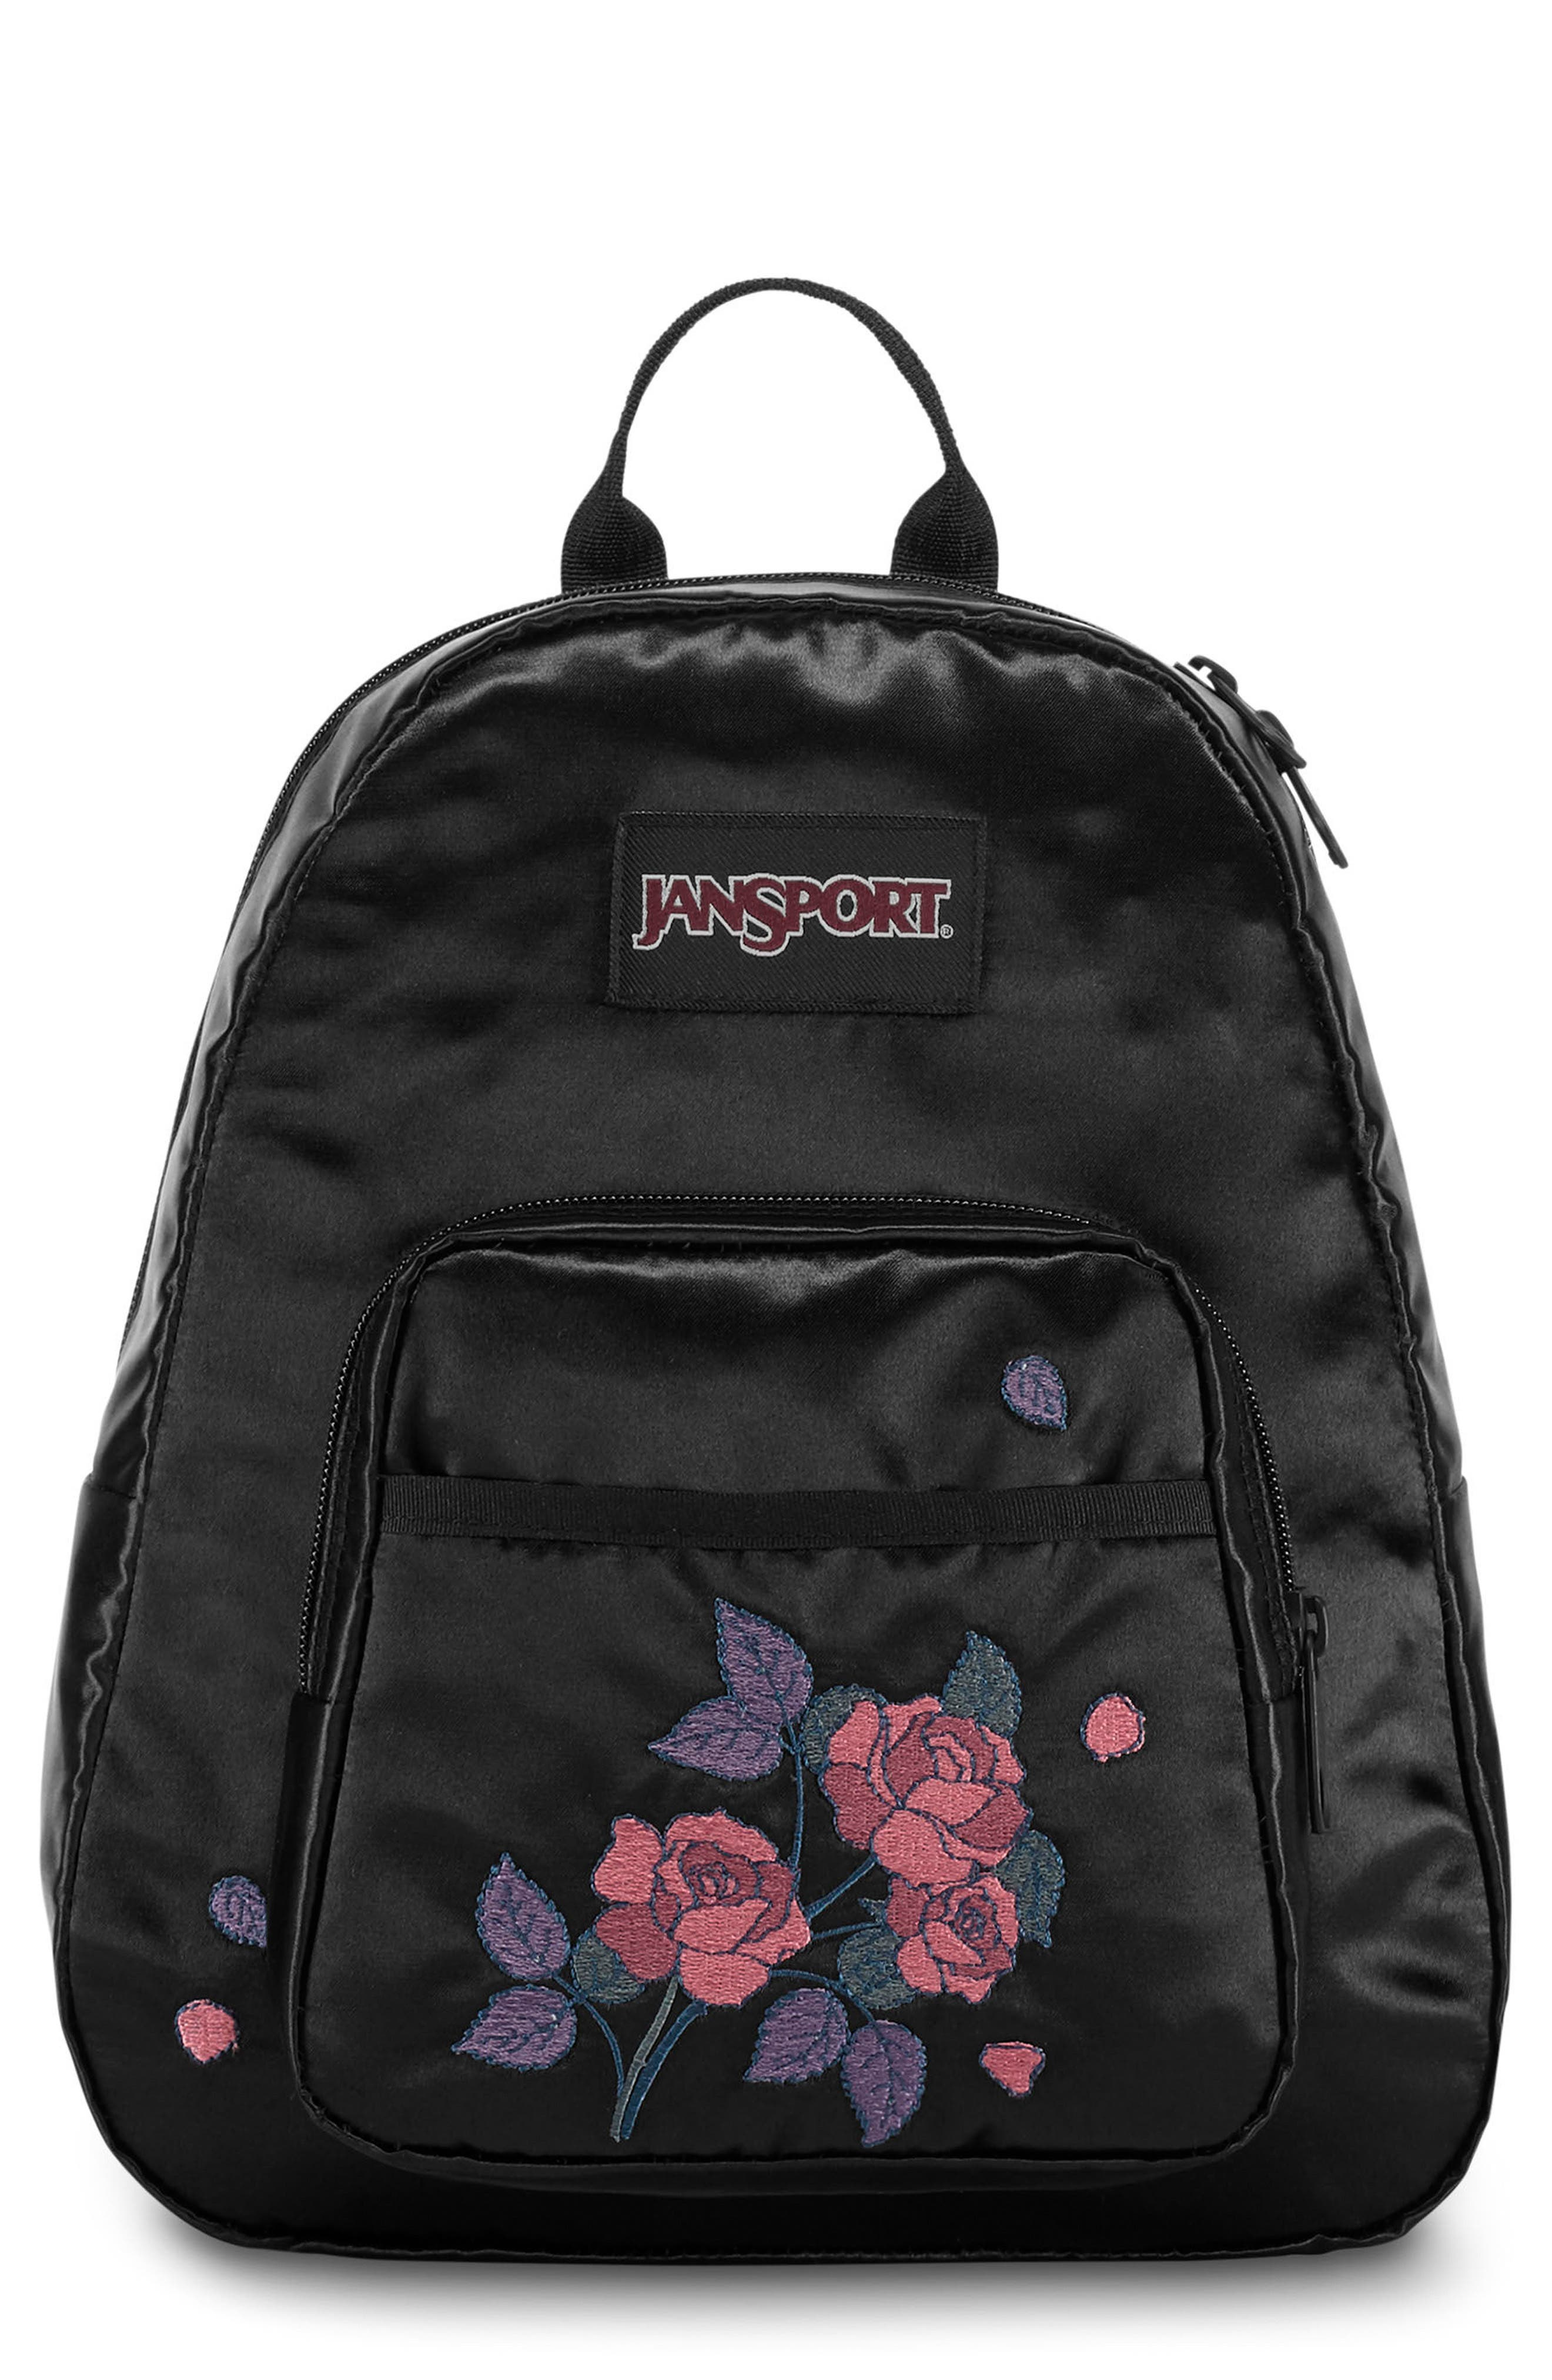 Half Pint Backpack,                         Main,                         color,